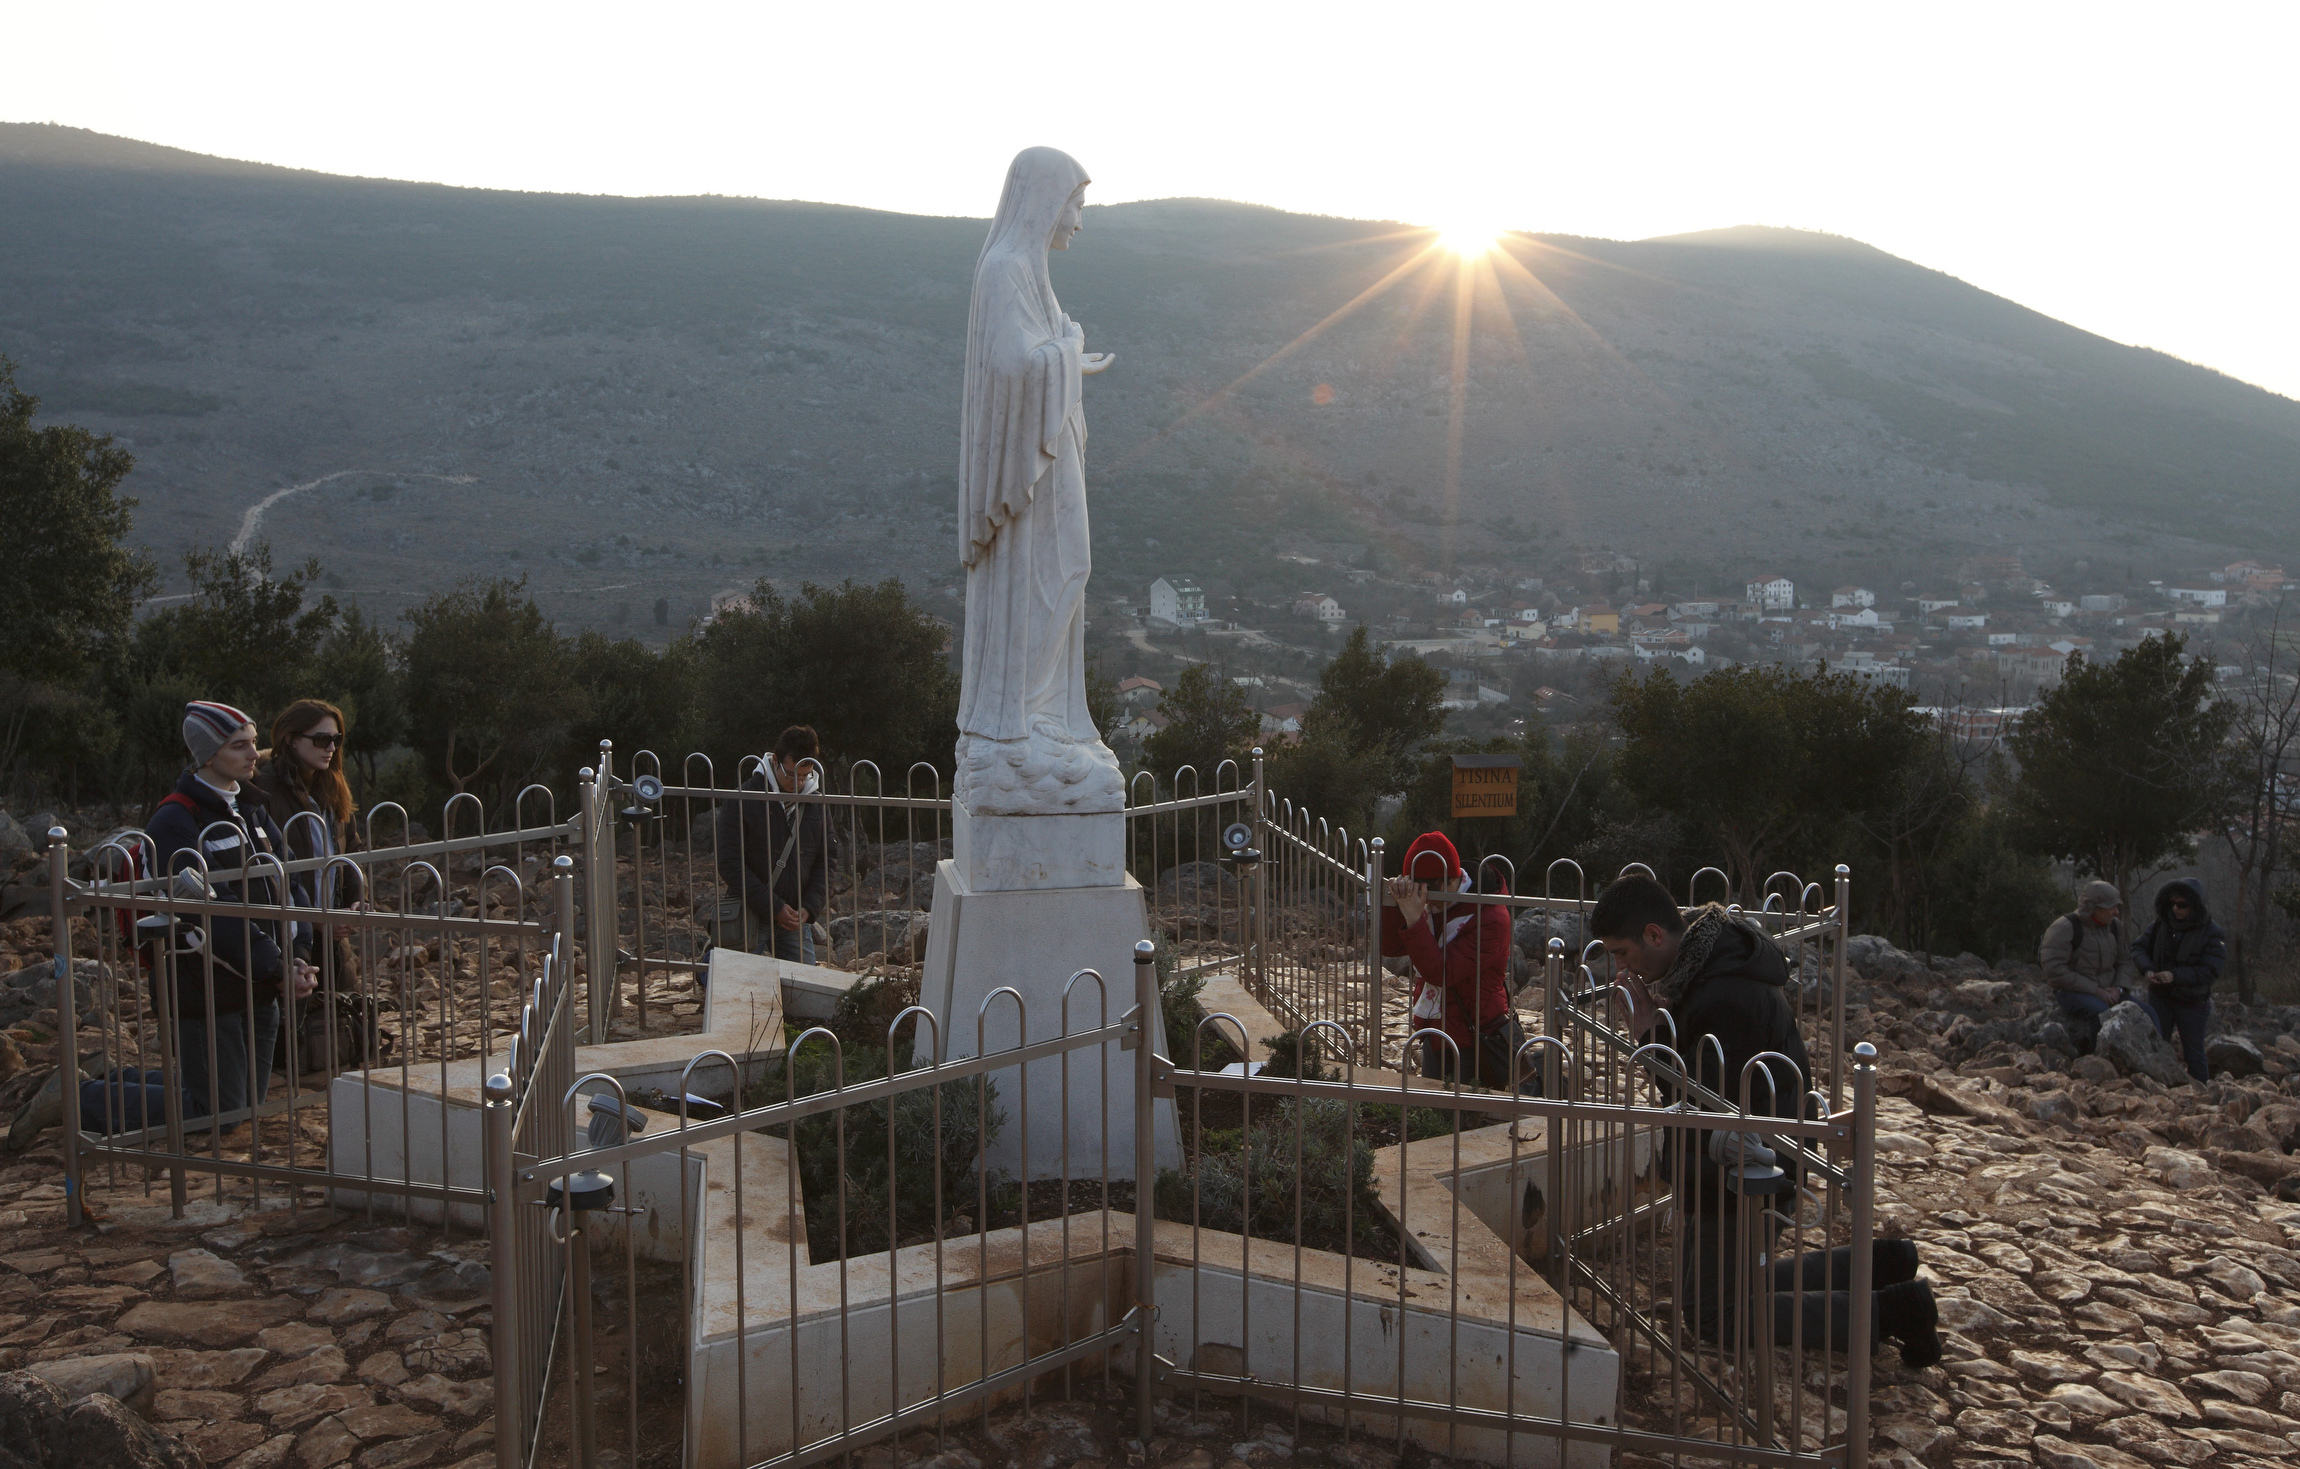 PILGRIMS PRAY AROUND STATUE OF MARY ON APPARITION HILL IN MEDJUGORJE